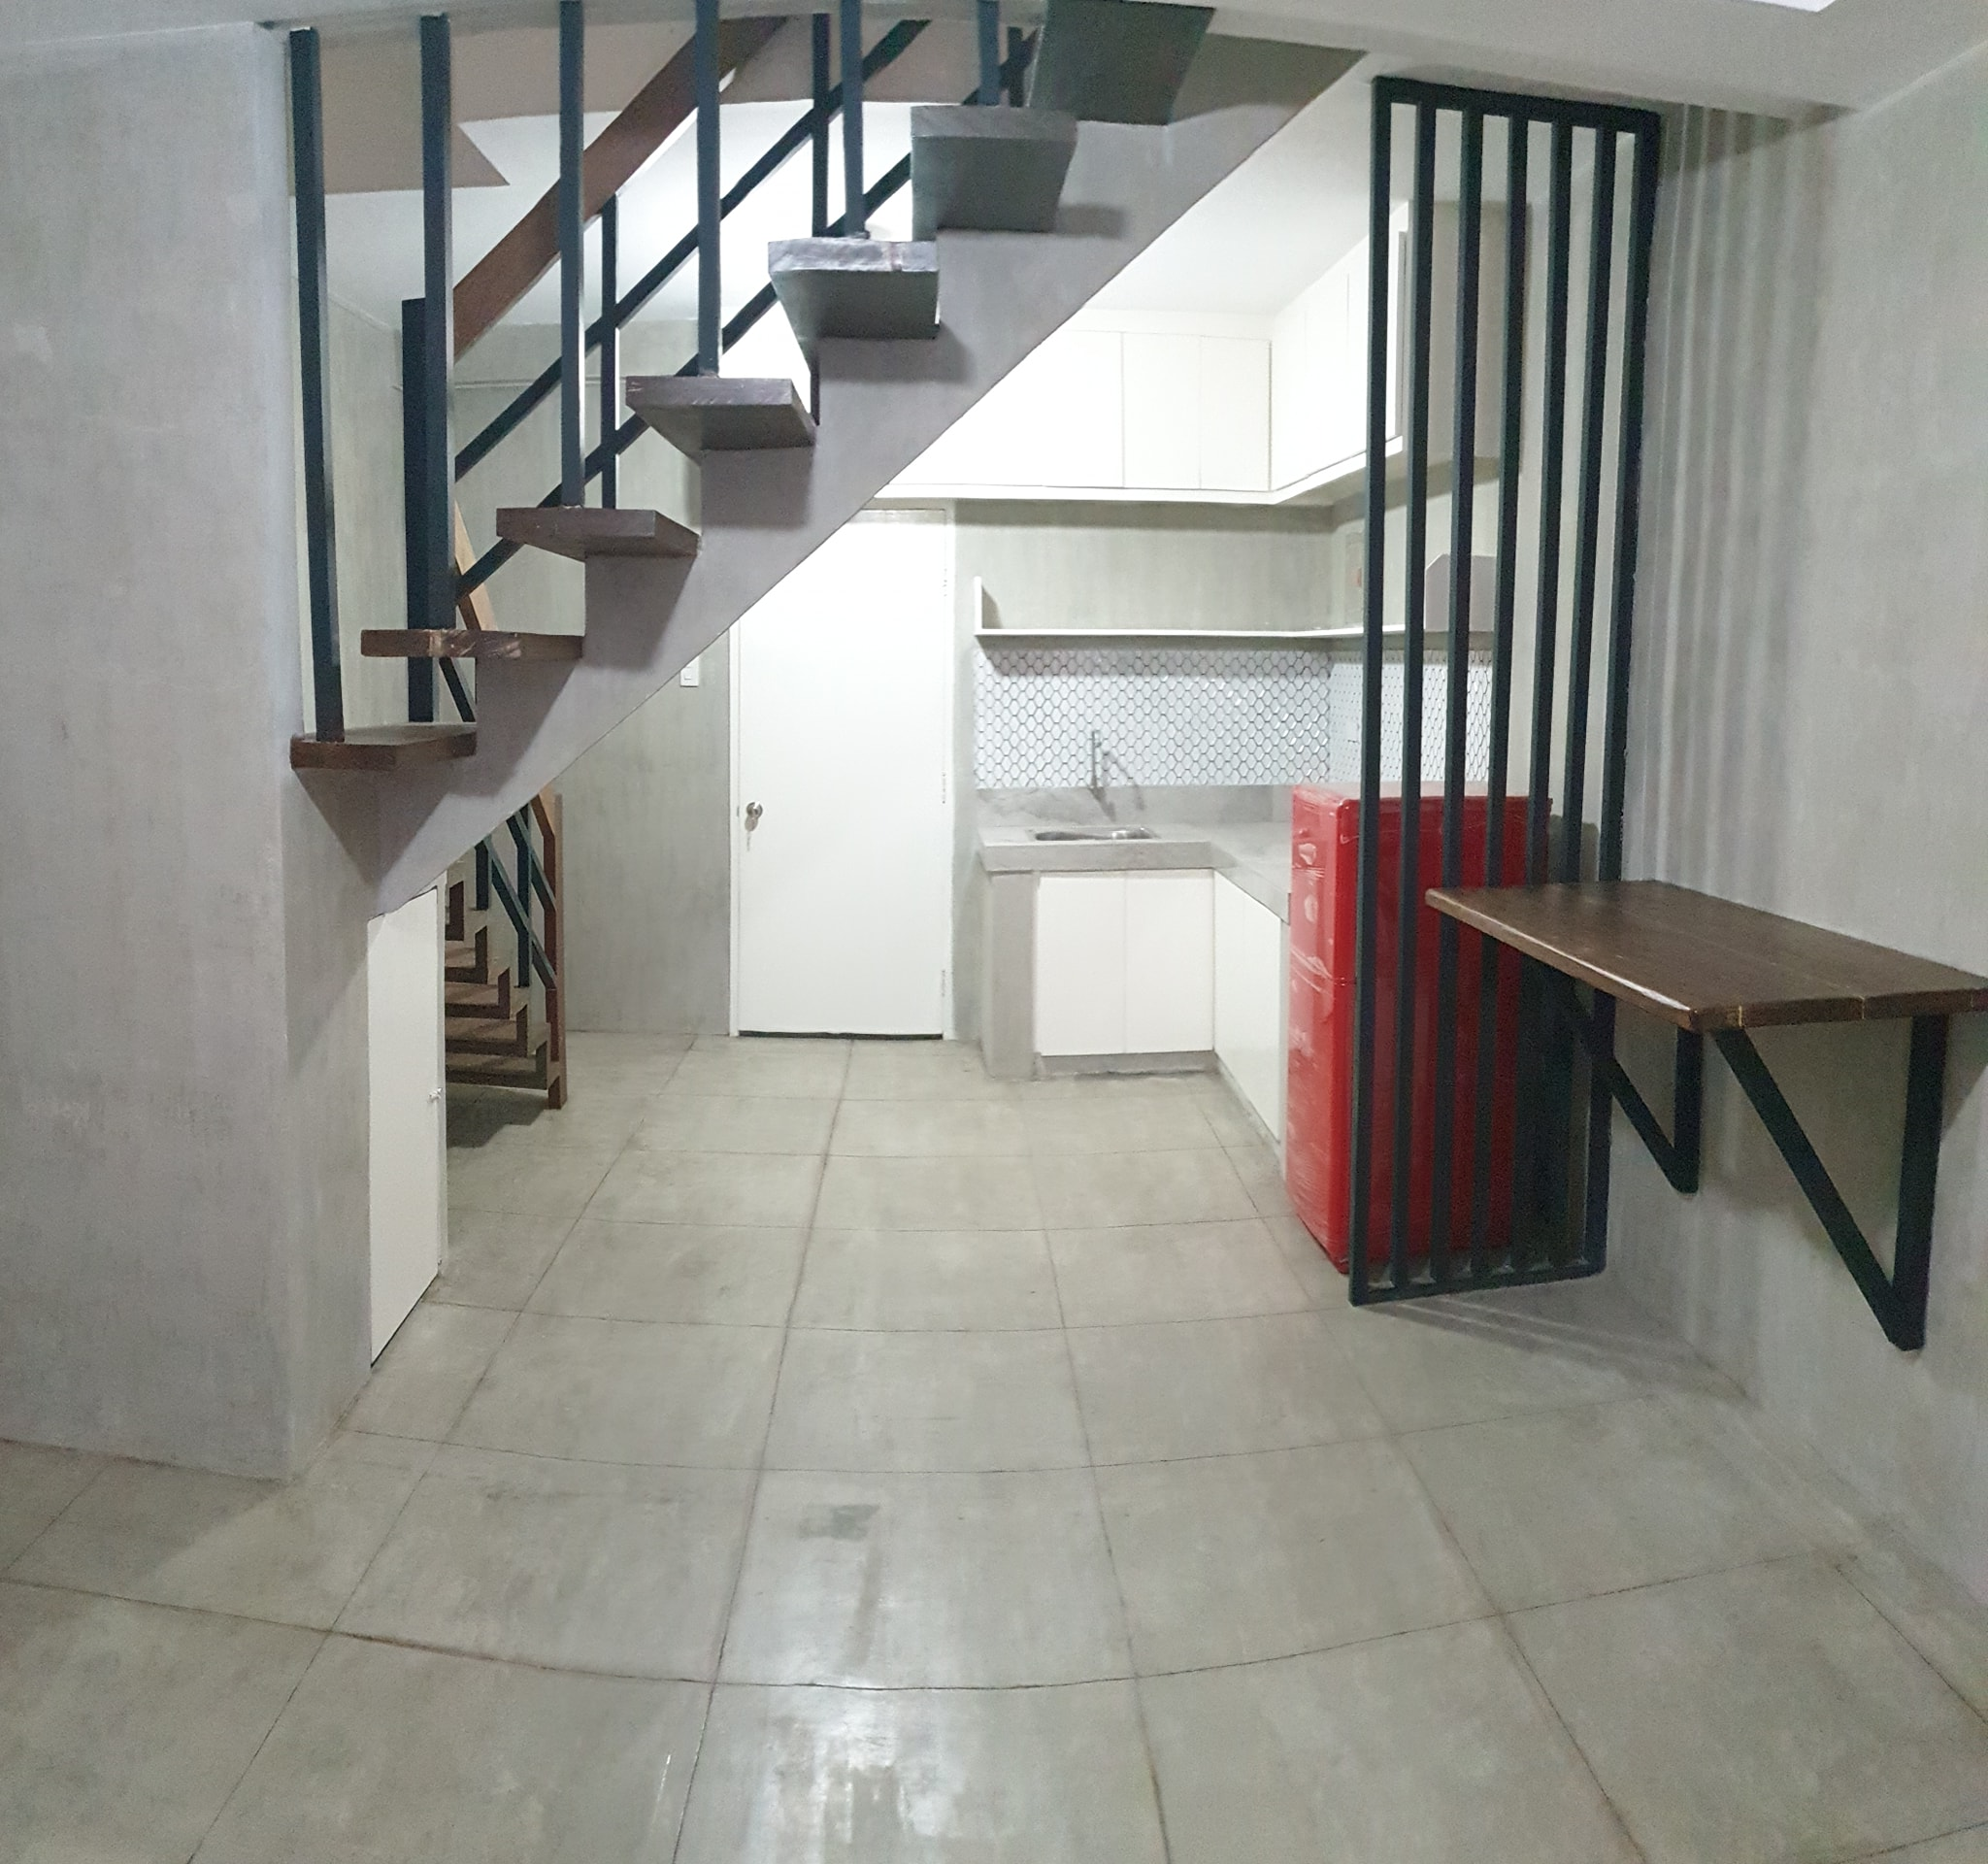 Poblacion Dorms / POB Space | 5k per month